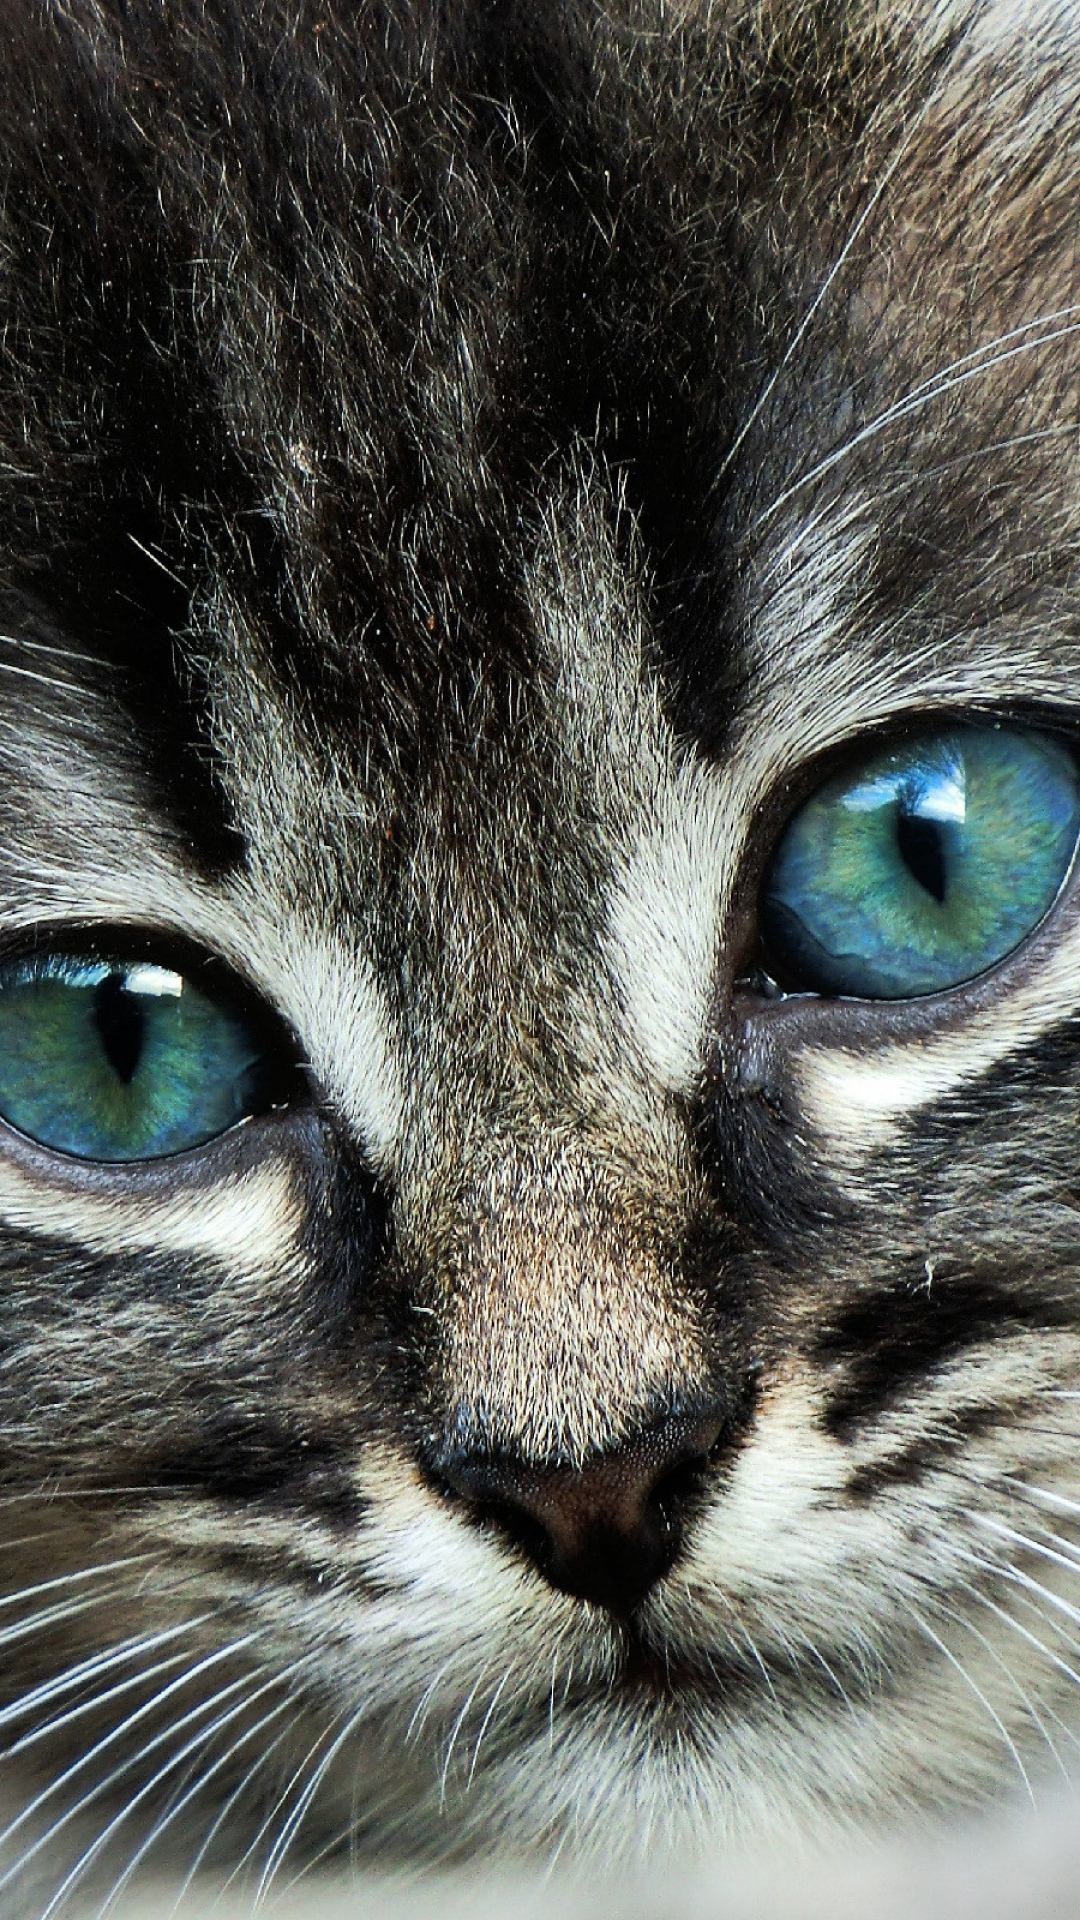 Download-1080x1920-cat-face-eyes-color-Sony-Xperia-Z-ZL-Z-Samsung-Galaxy-S-HTC-On-wallpaper-wp3605086